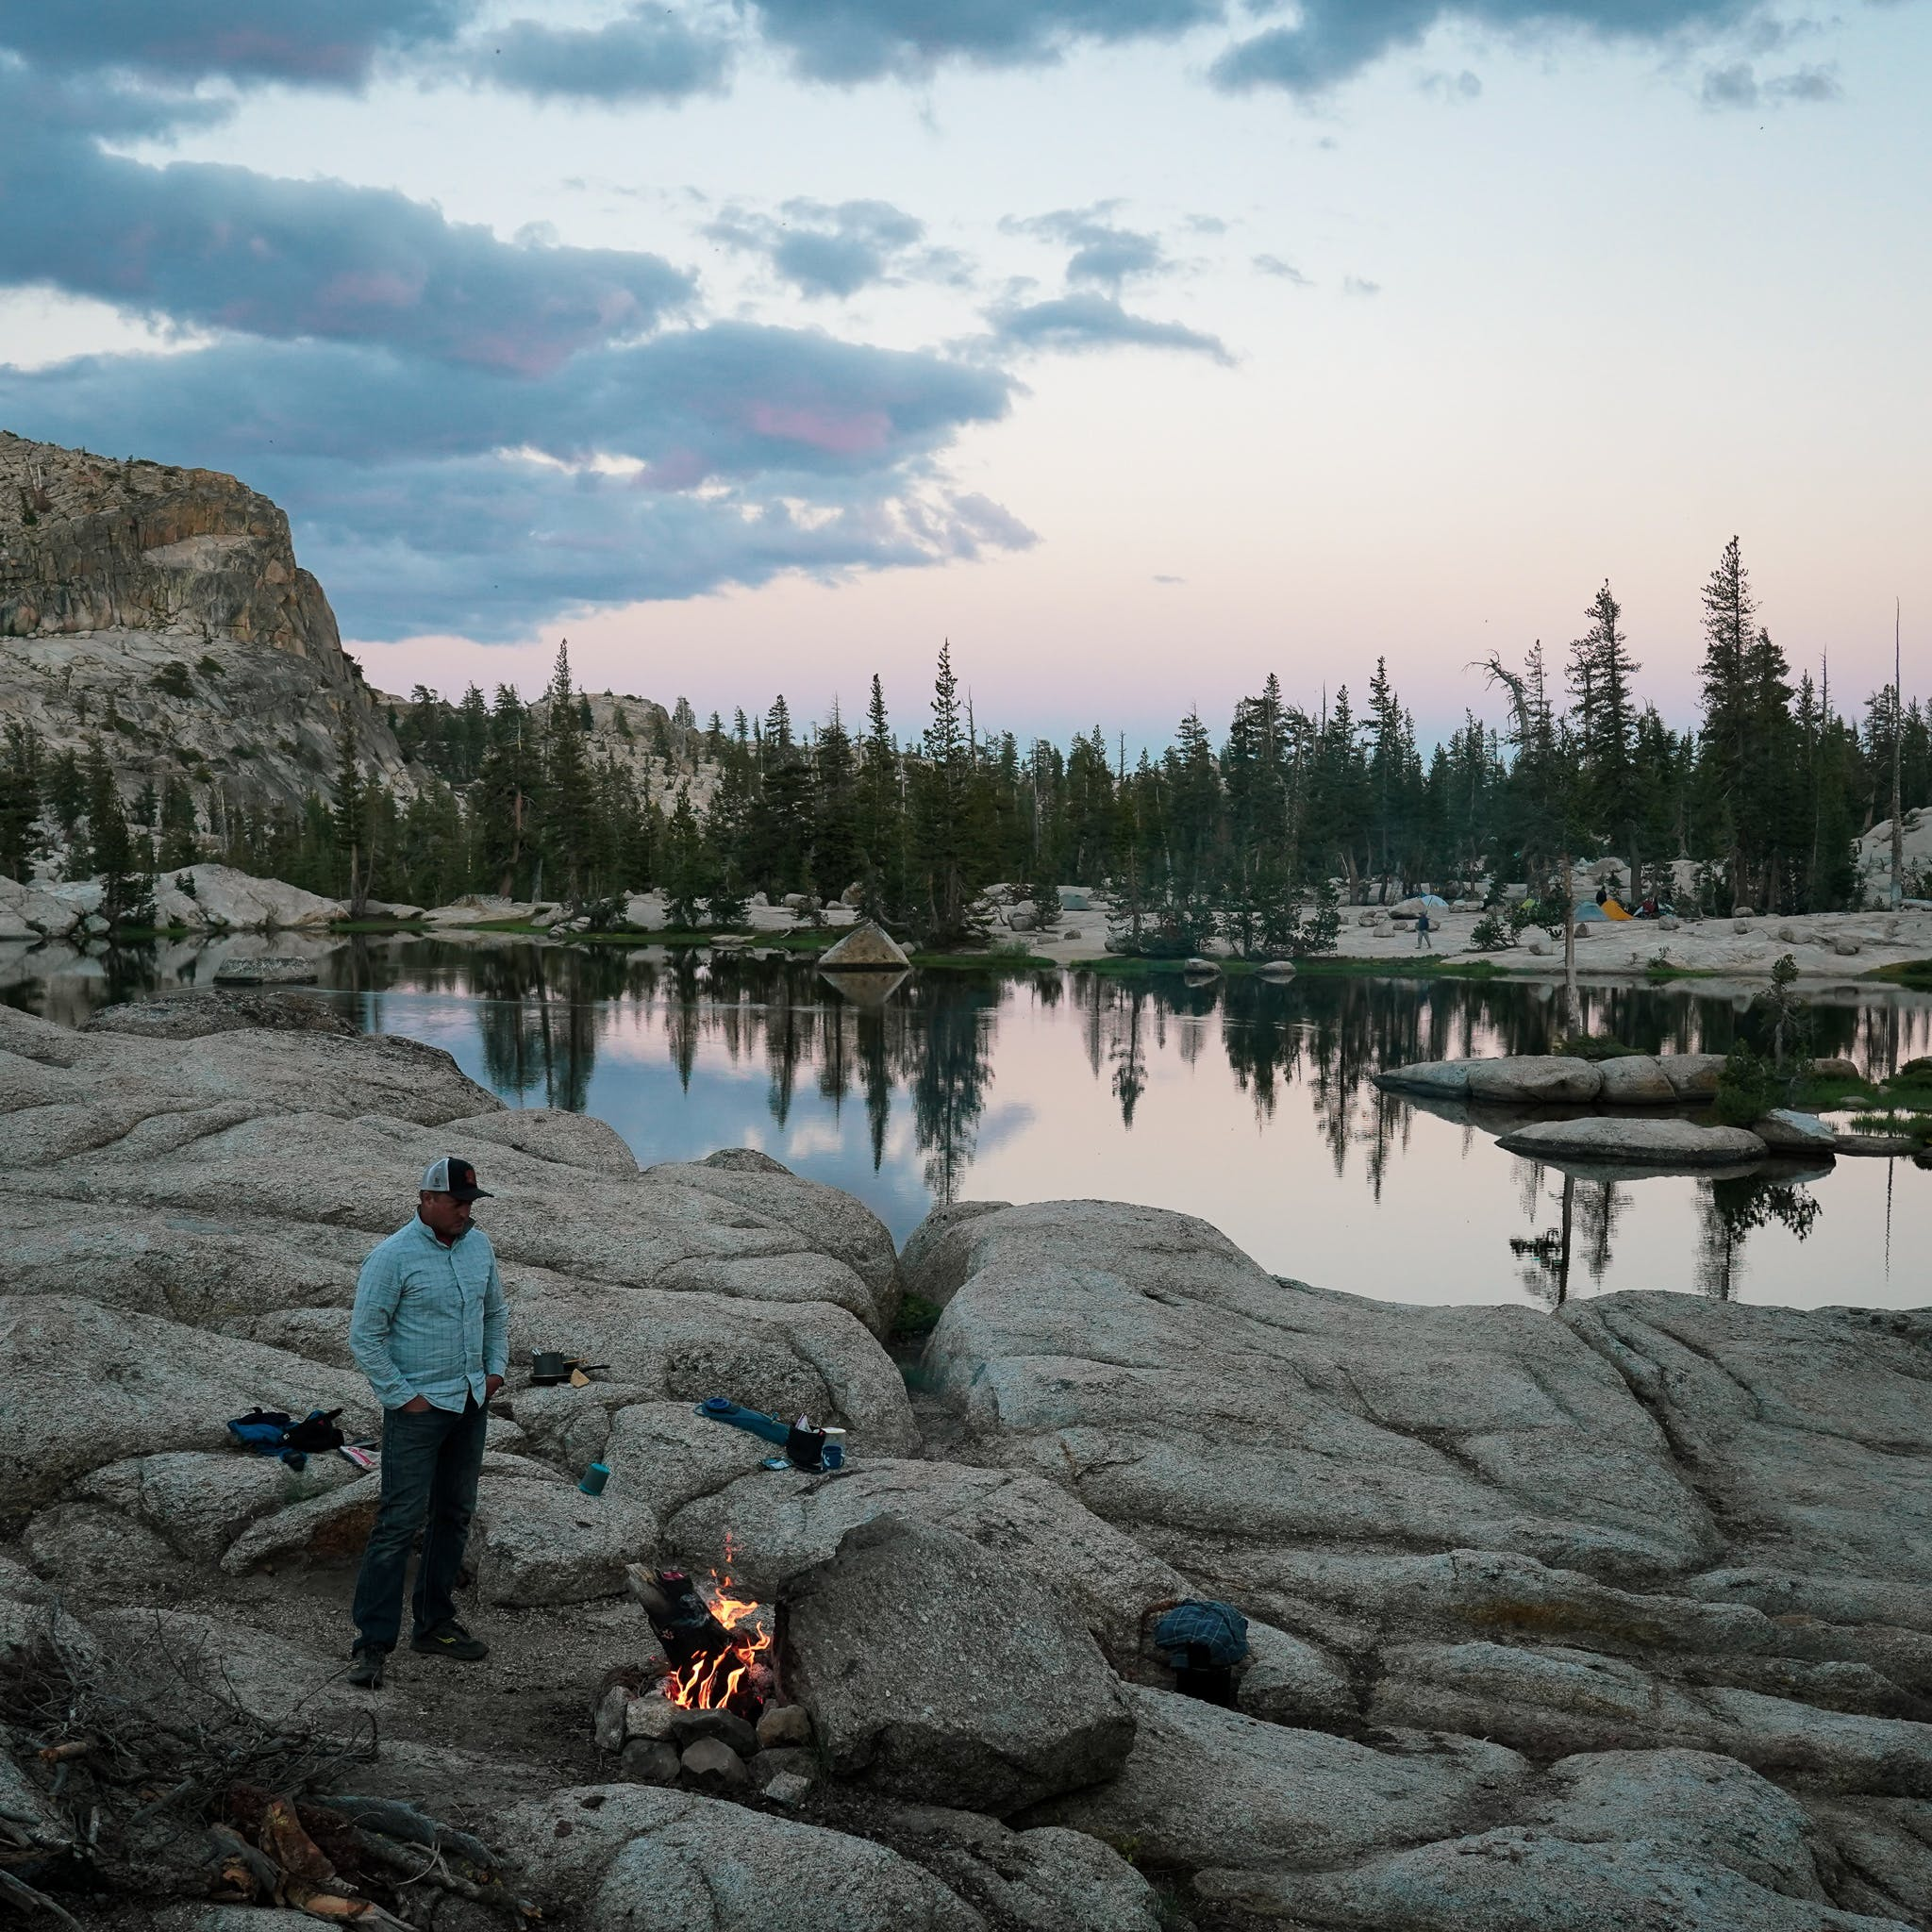 Sunset at Chewing Gum Lake in the Emigrant Wilderness